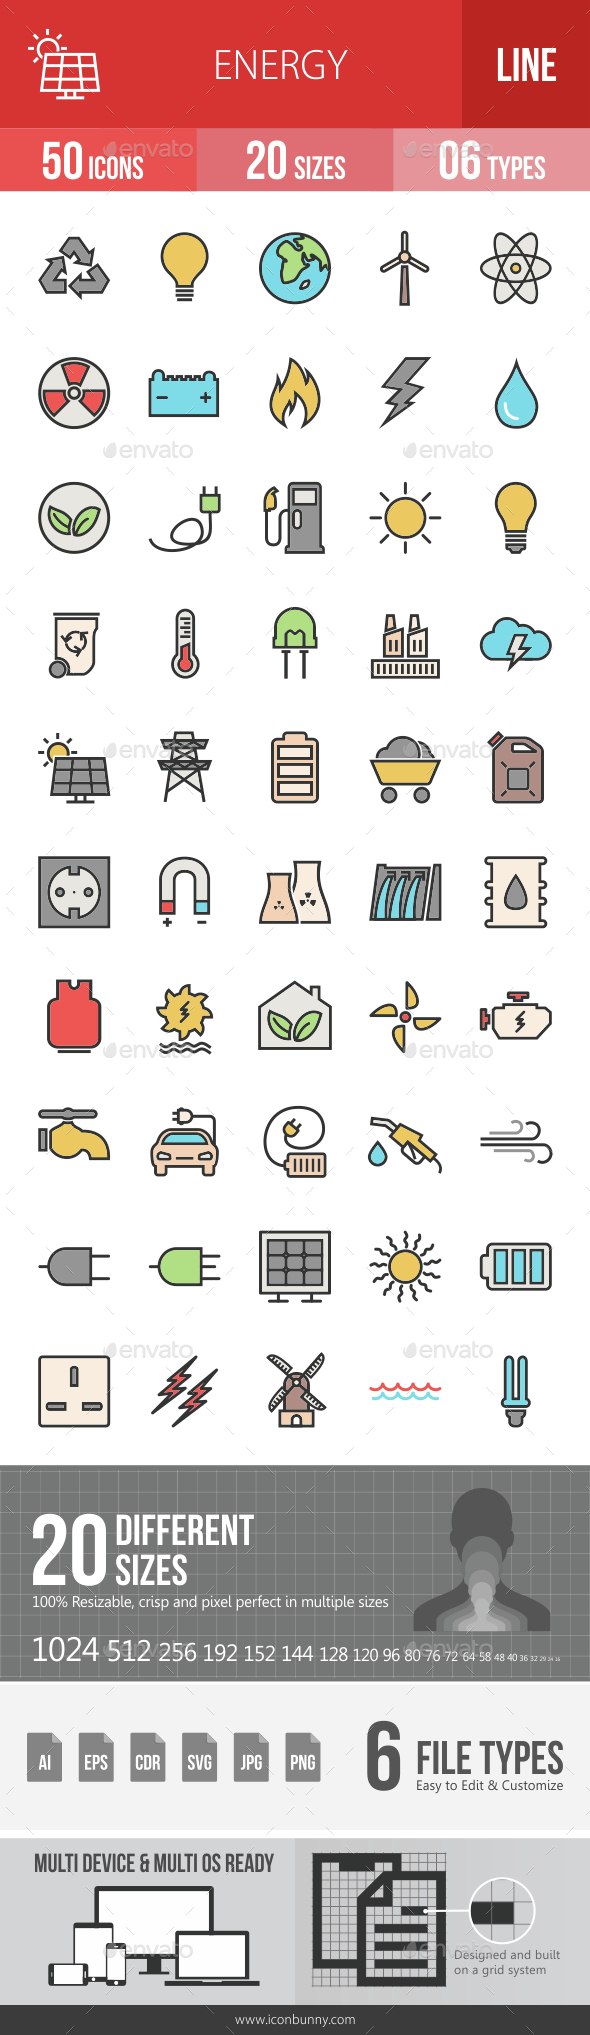 Energy Filled Line Icons - Icons